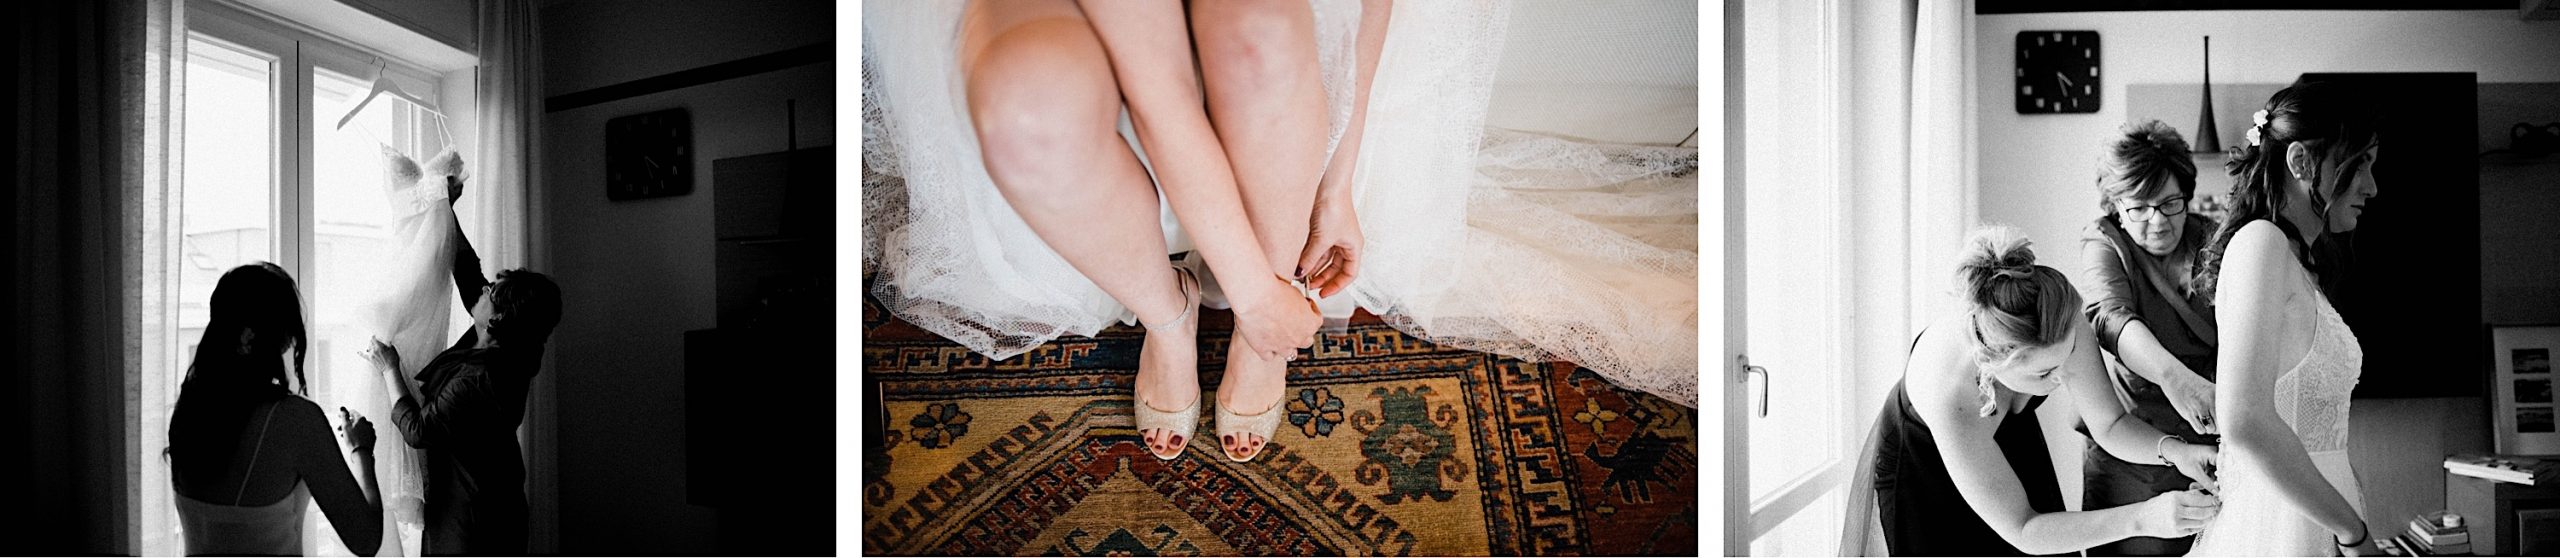 Three Destination Wedding Photos place side-by-side of a bride having her Flora Bridal Gown put on and putting her Jimmy Choo shoes on.